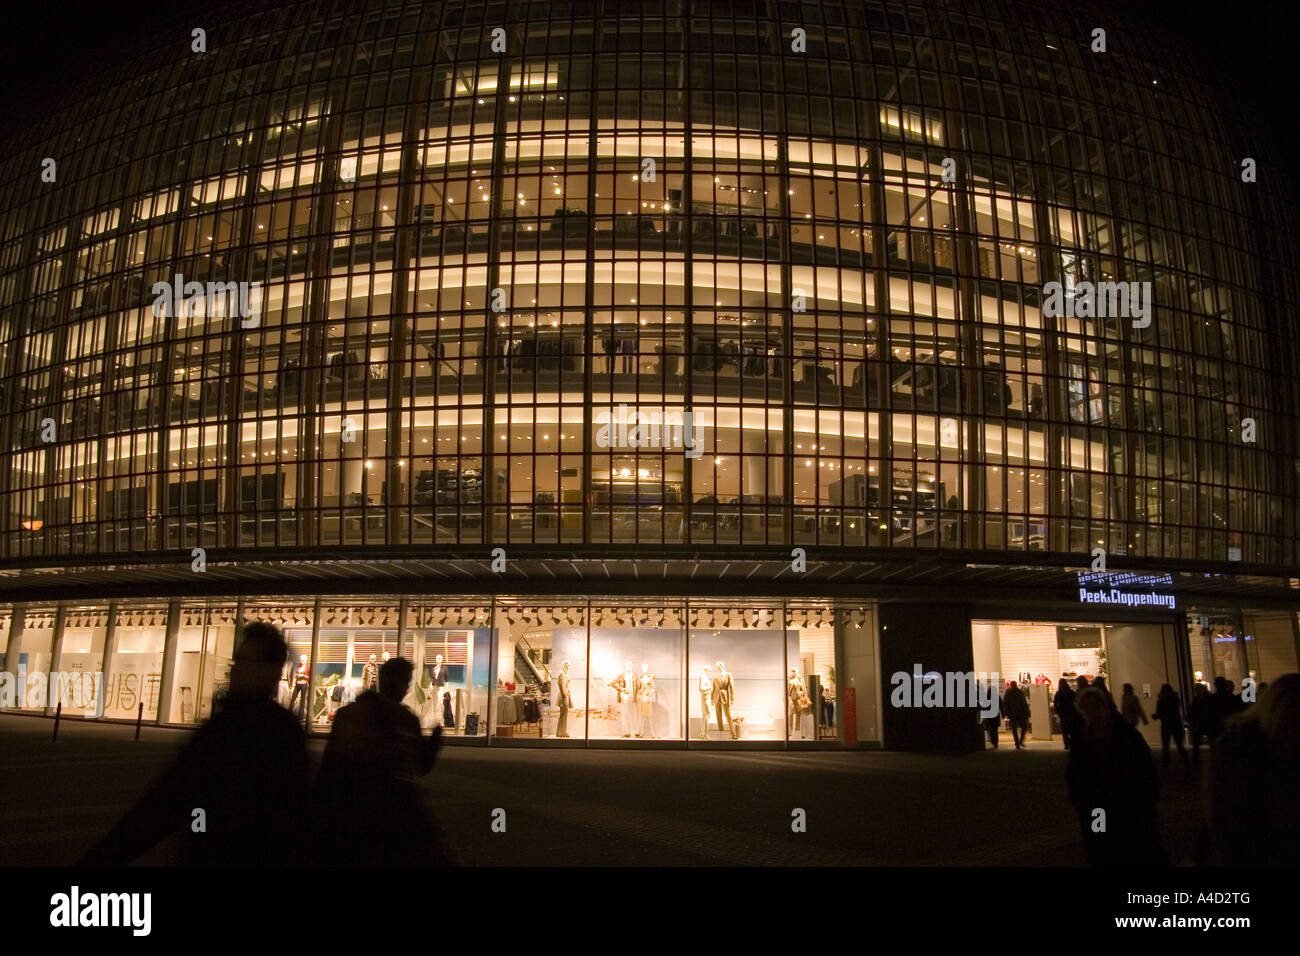 Peek and Cloppenberg Department Store at Night Cologne Germany Stock Photo